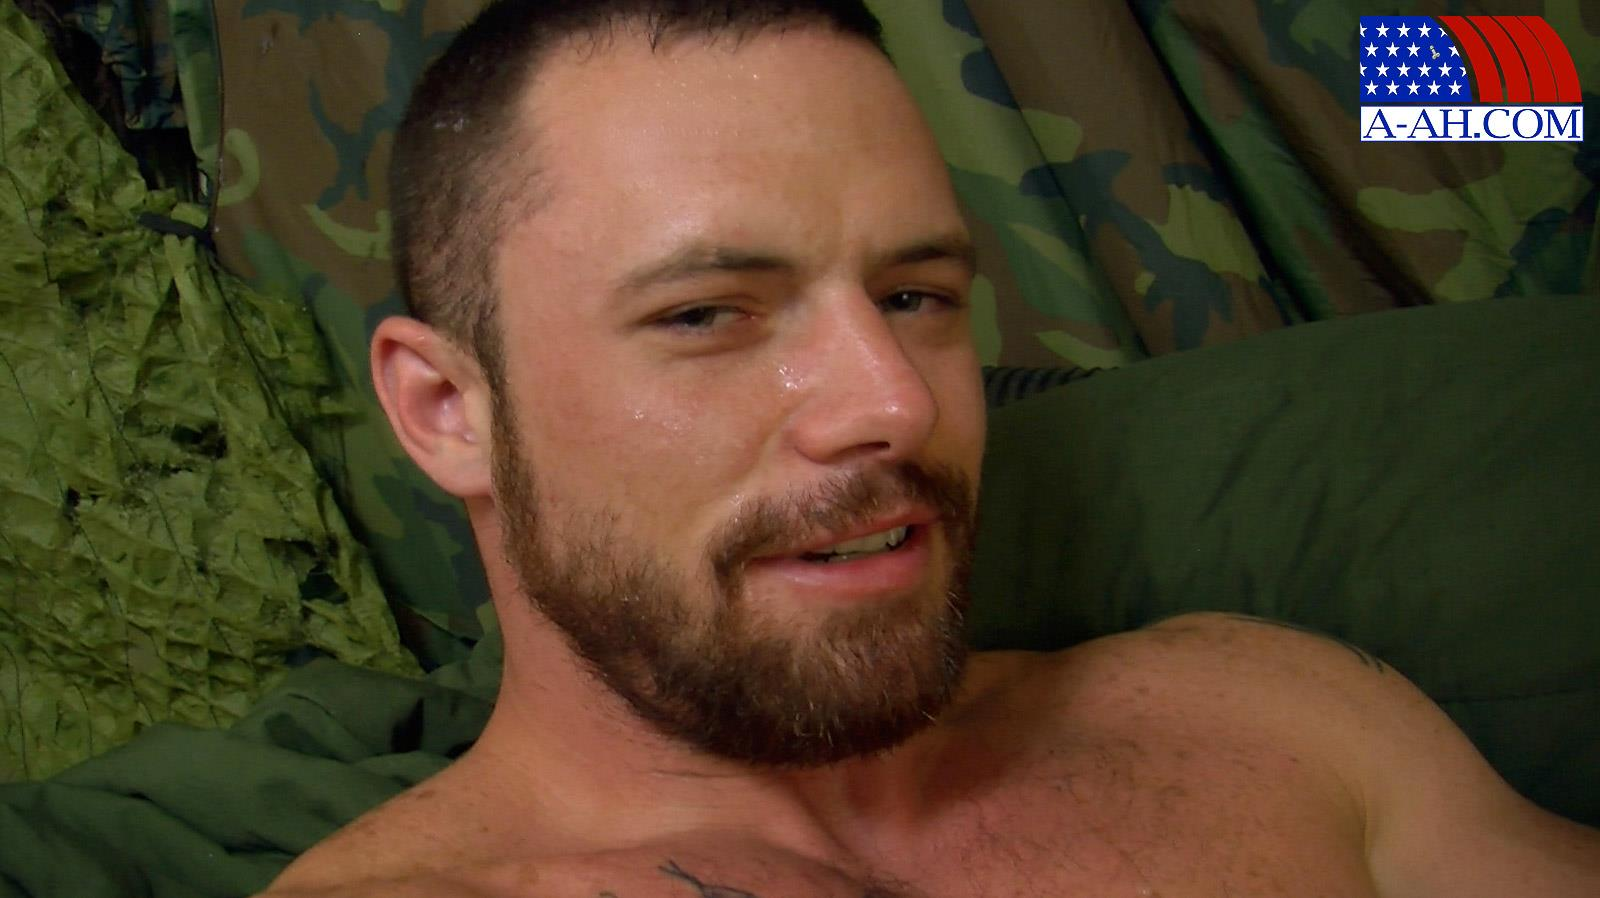 All-American-Heroes-Sergeant-Miles-Army-Guy-Jerking-Off-Big-Cock-And-Fingering-Ass-Amateur-Gay-Porn-15 Happy Veterans Day: Straight US Army Sergeant Jerks His Thick Cock